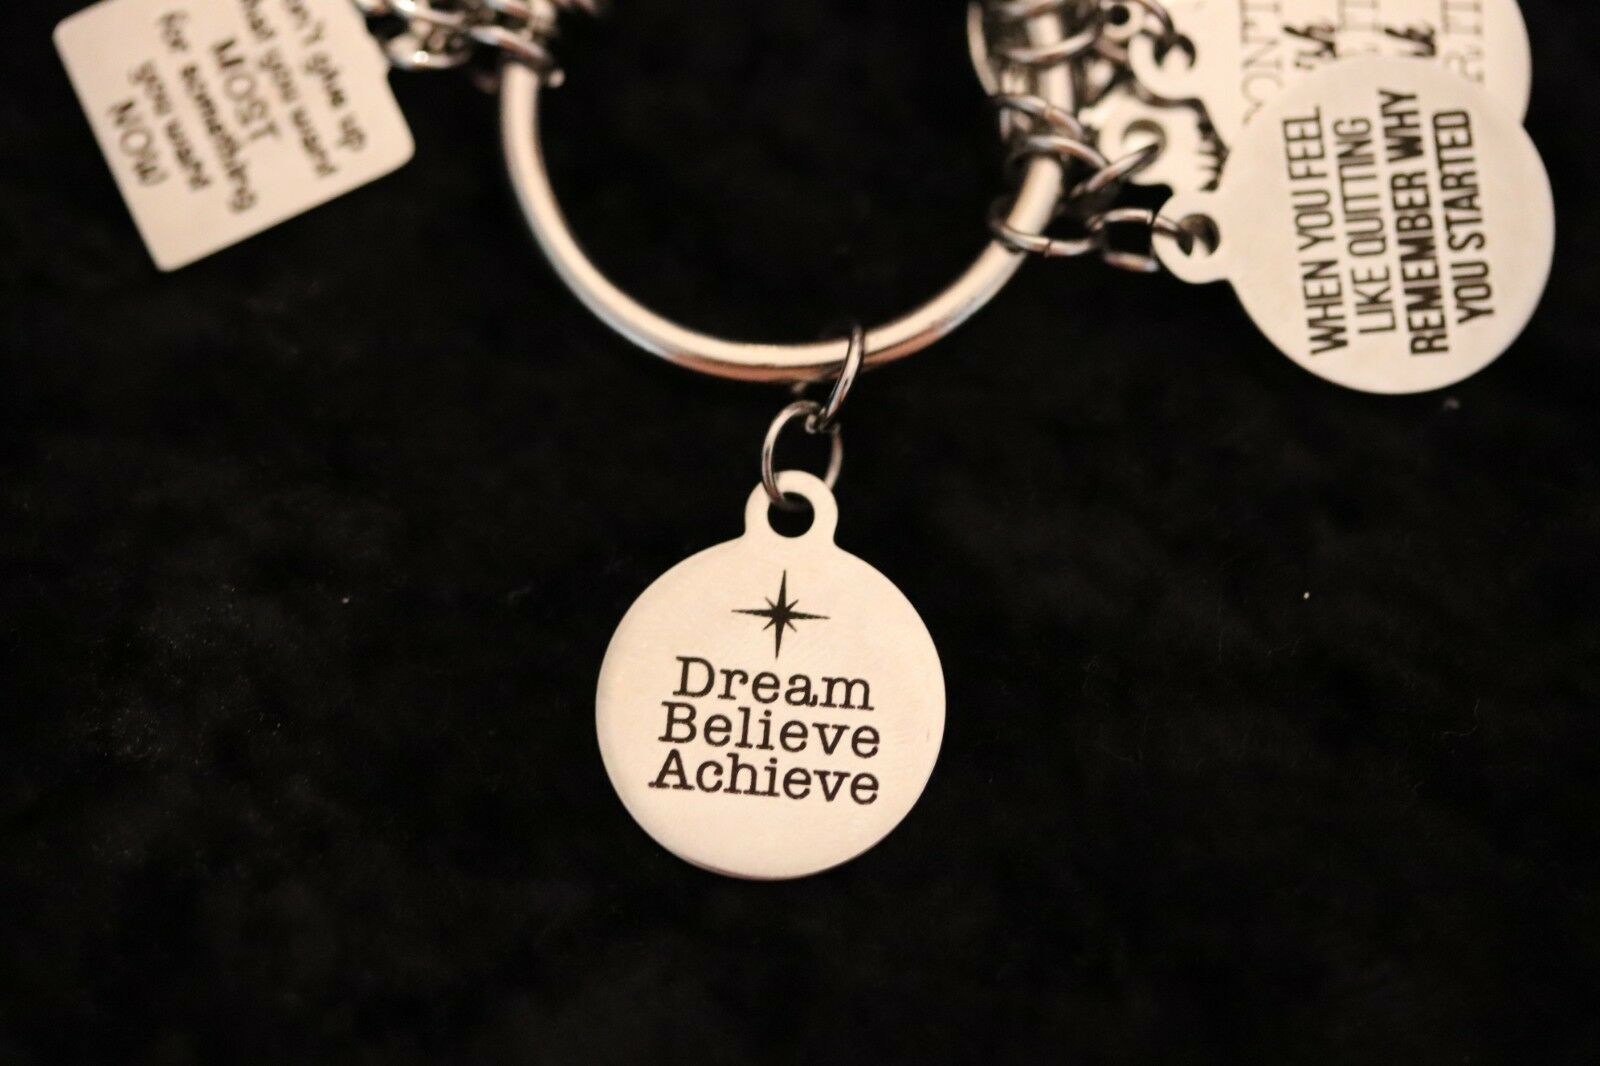 Dream Believe Achieve – Motivational Weight Loss Charm for Weight Watchers Ring s l1600